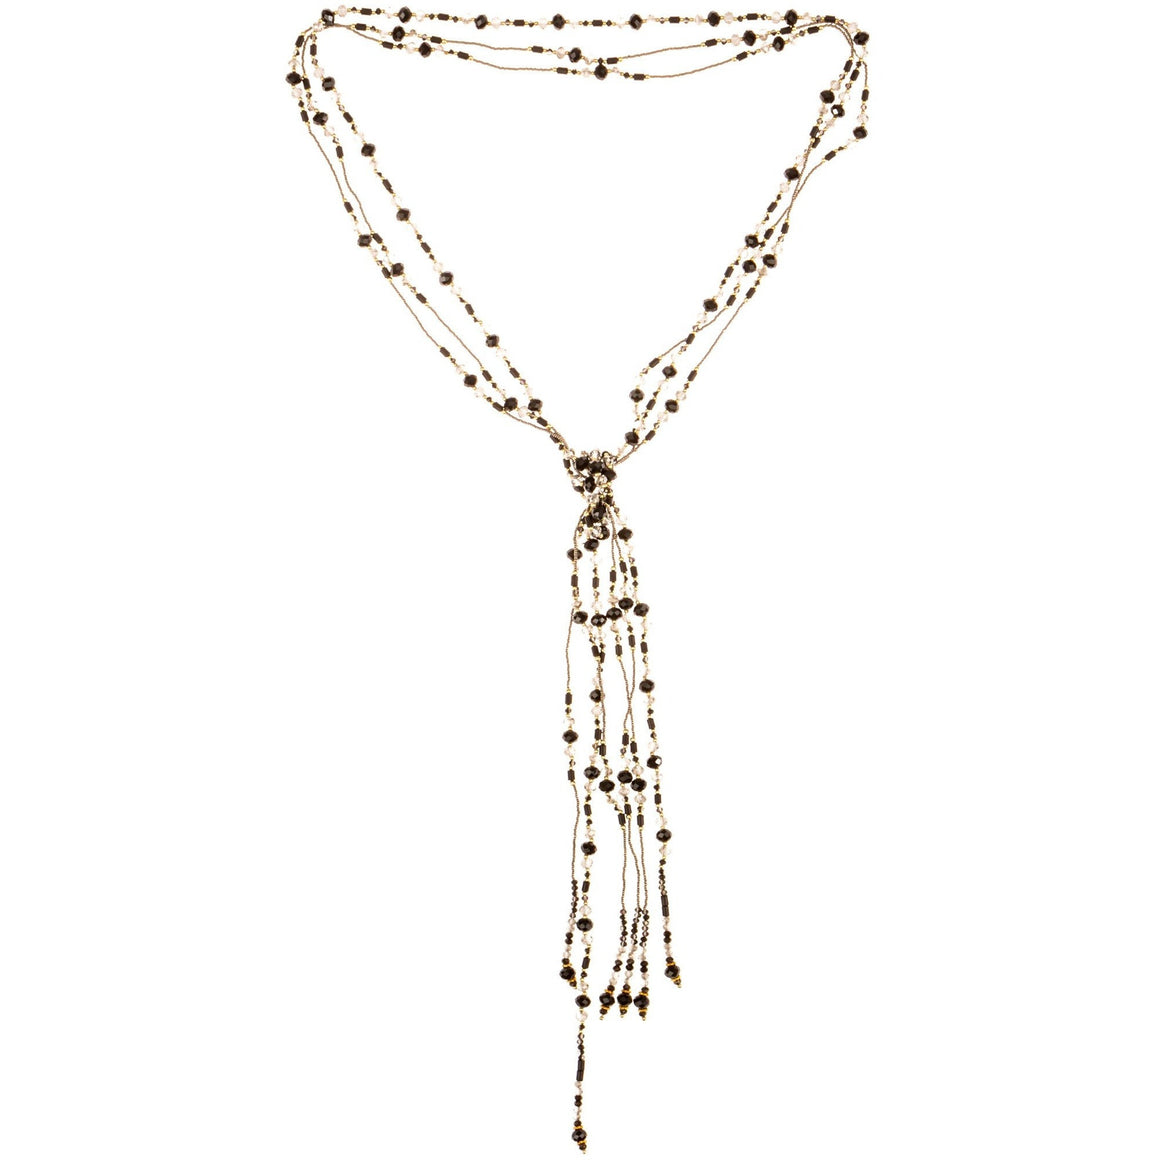 "Necklace Handcrafted Glass and Crystal Beads Three Strands of Rope Black 55"" long - Beads and Dangles"